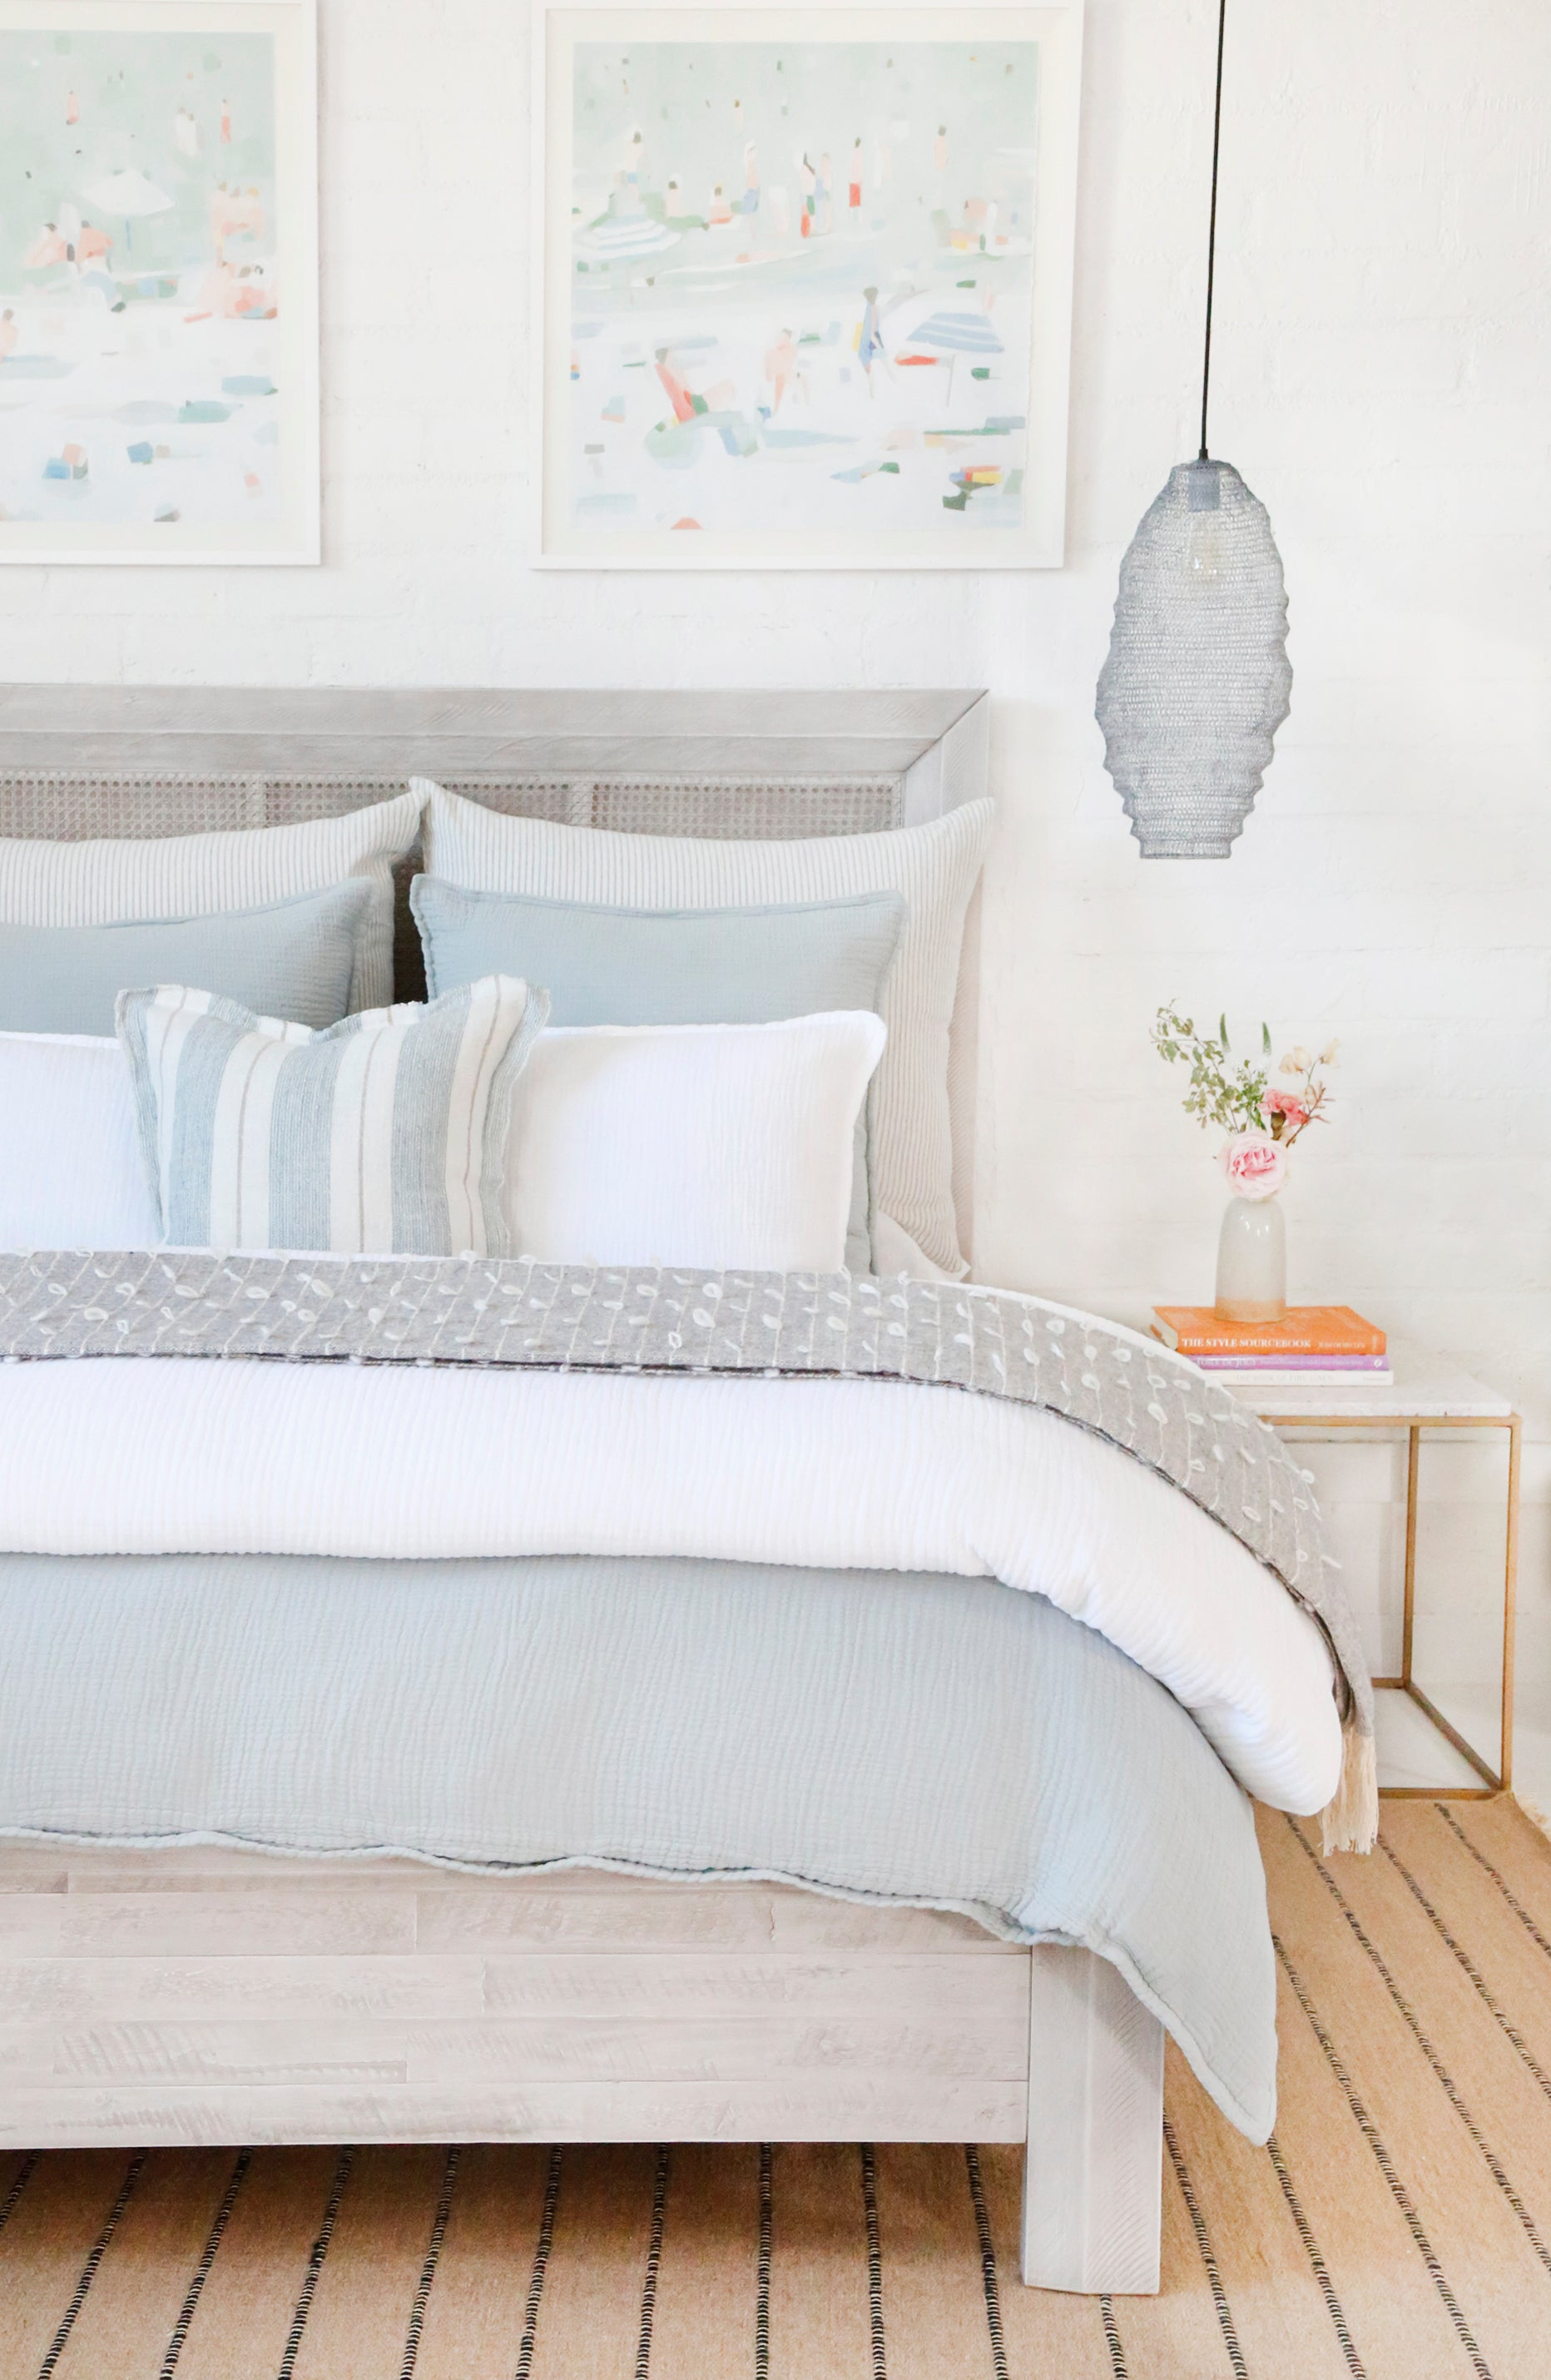 blue and white bedding on bed, lots of pillows